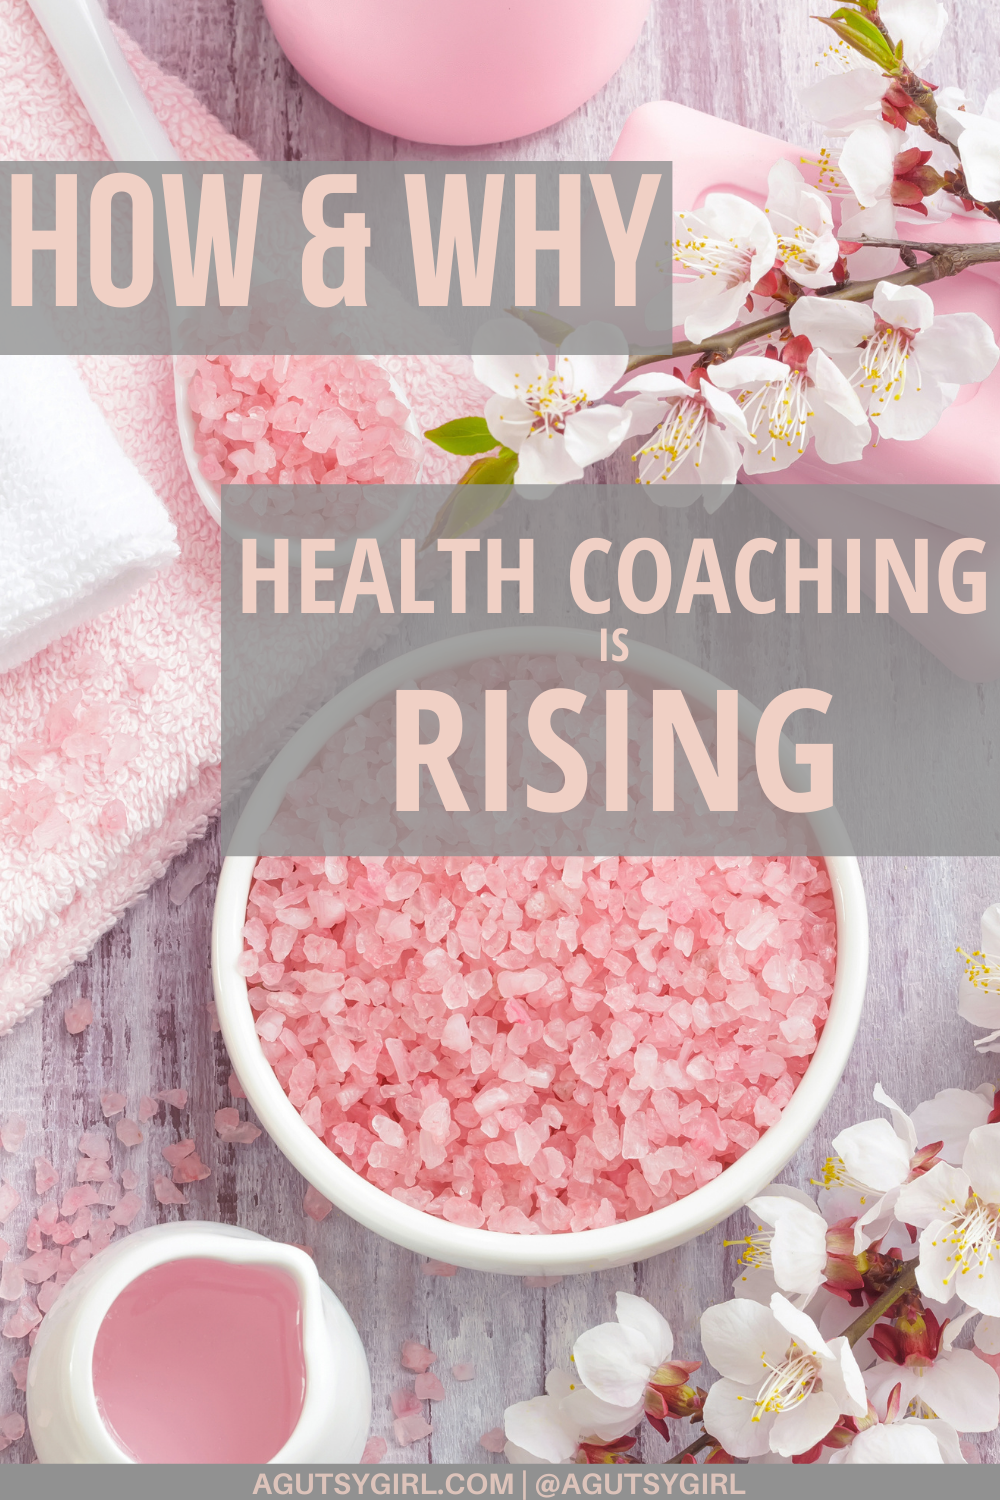 Why is health coaching rising? agutsygirl.com #healthcoach #healthcoaching #IIN